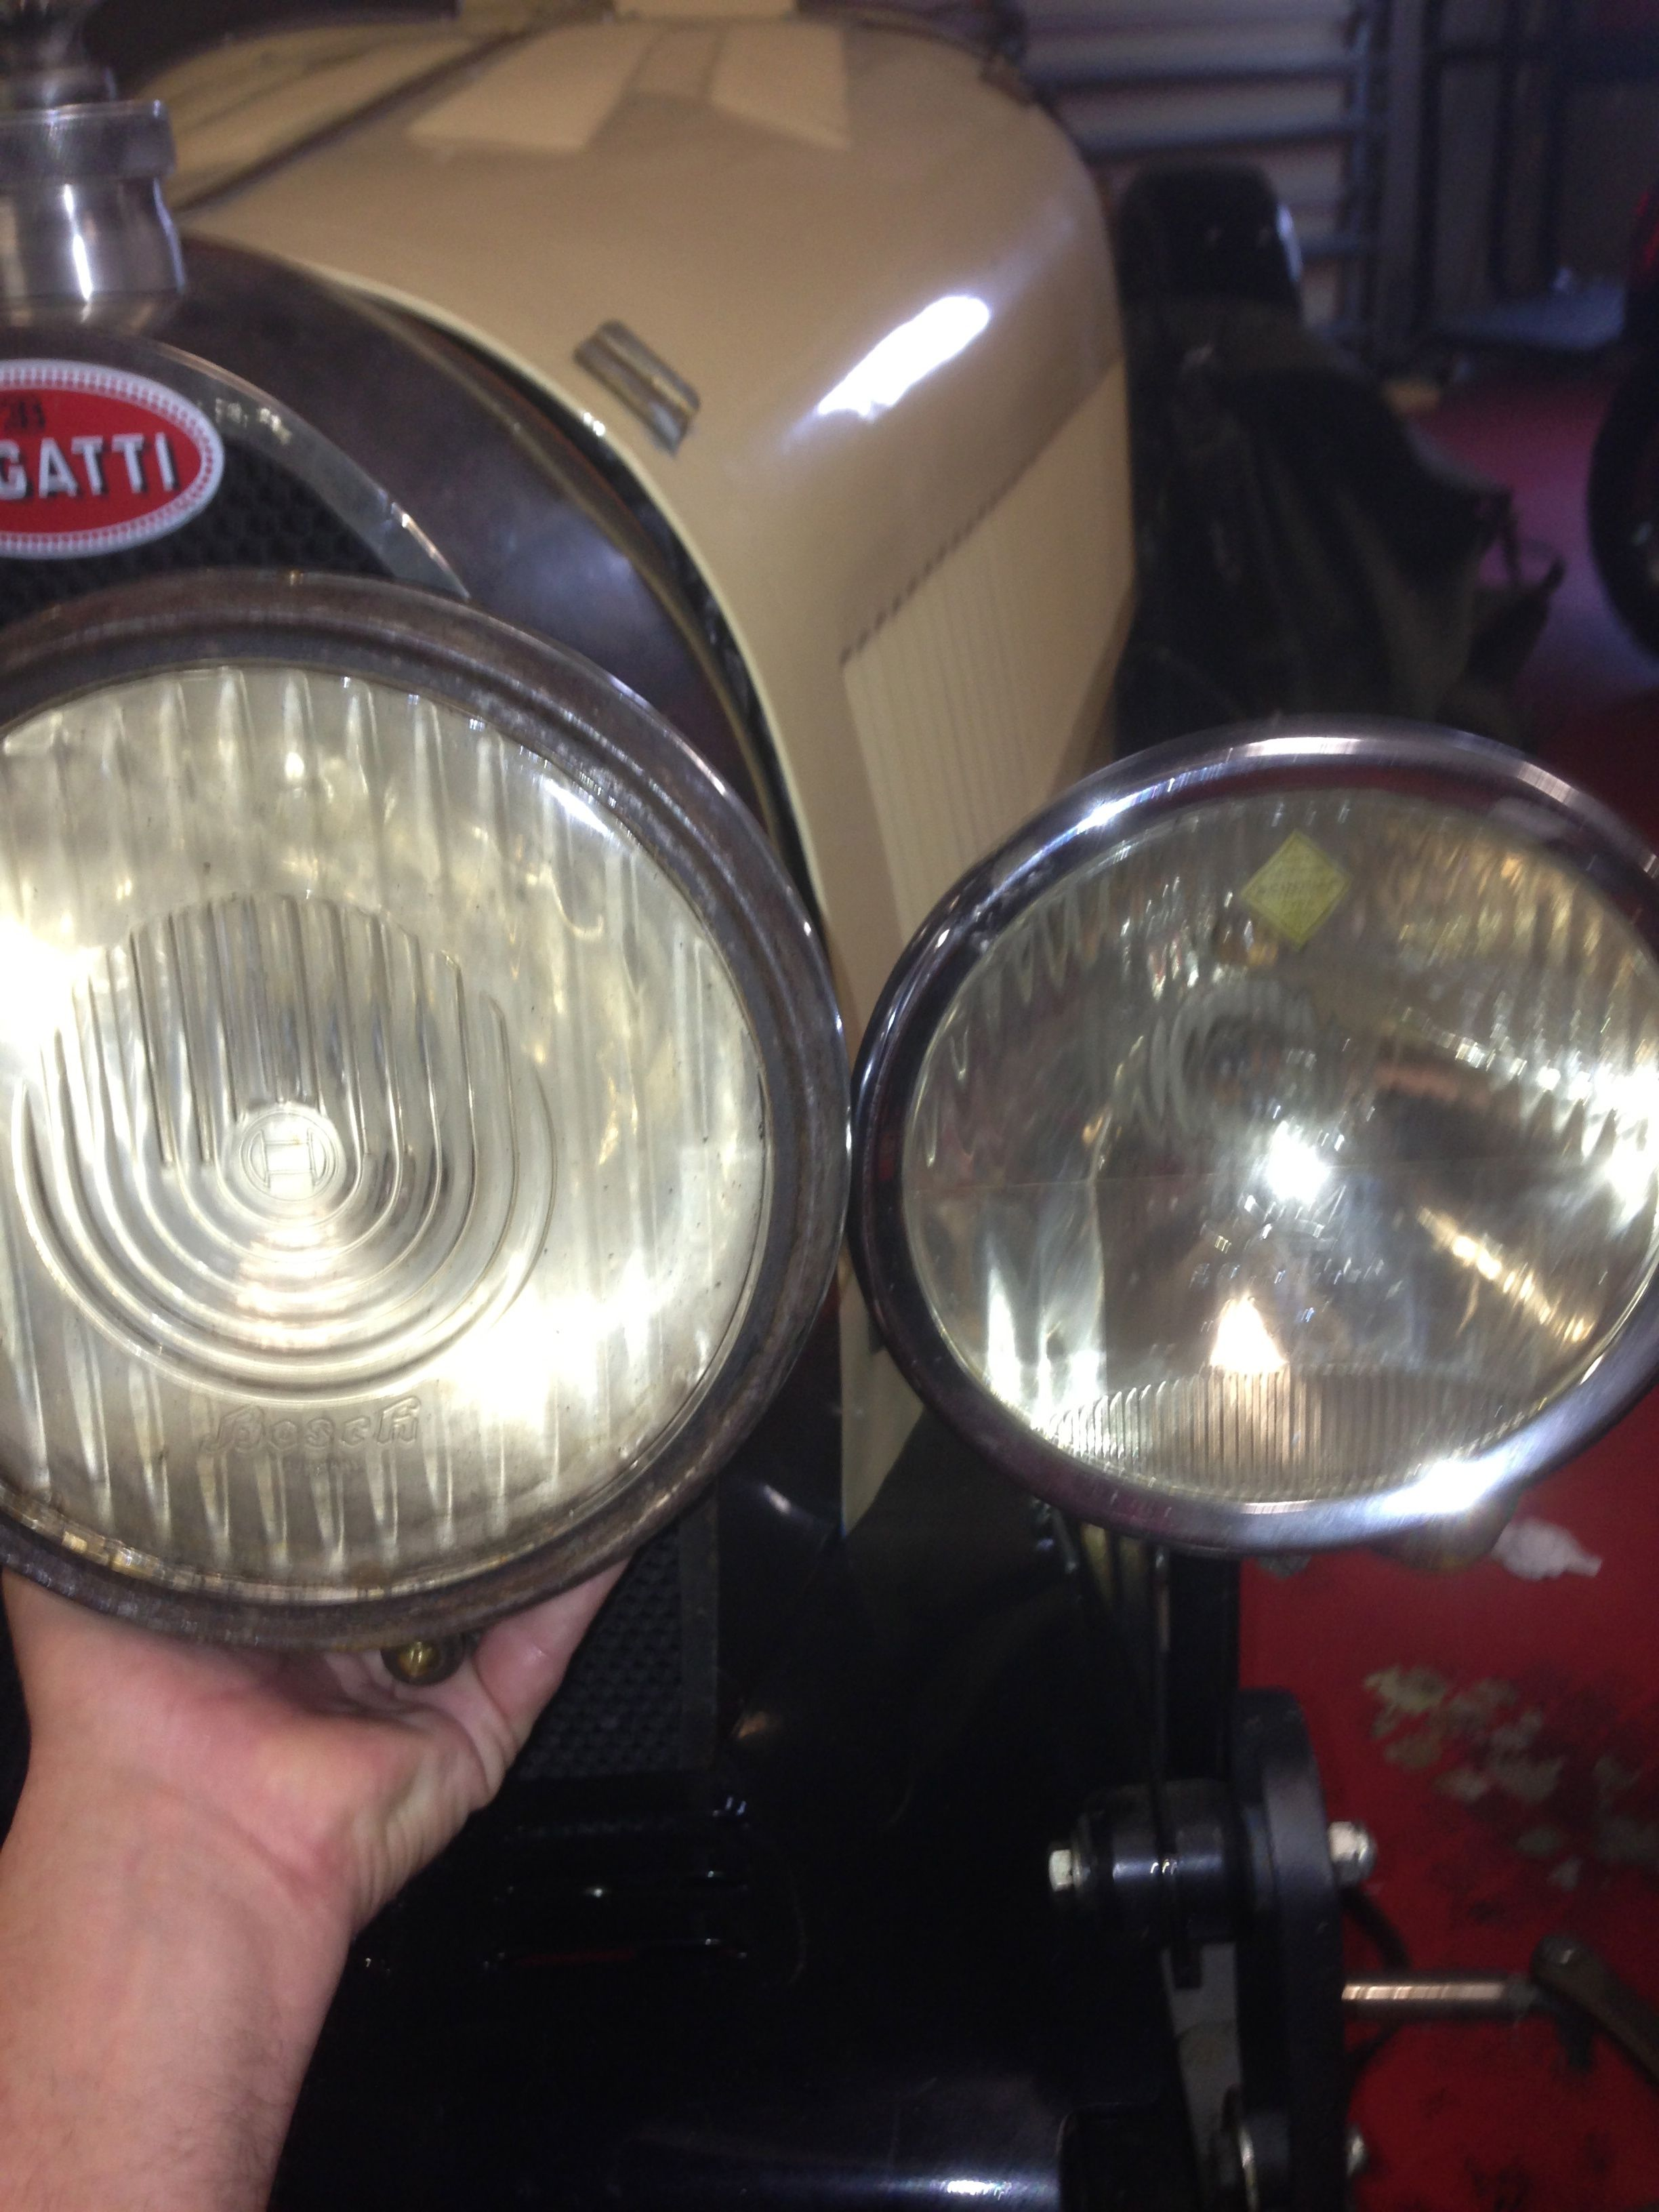 Size parison next to a Scintilla headlamp on a Bugatti of an